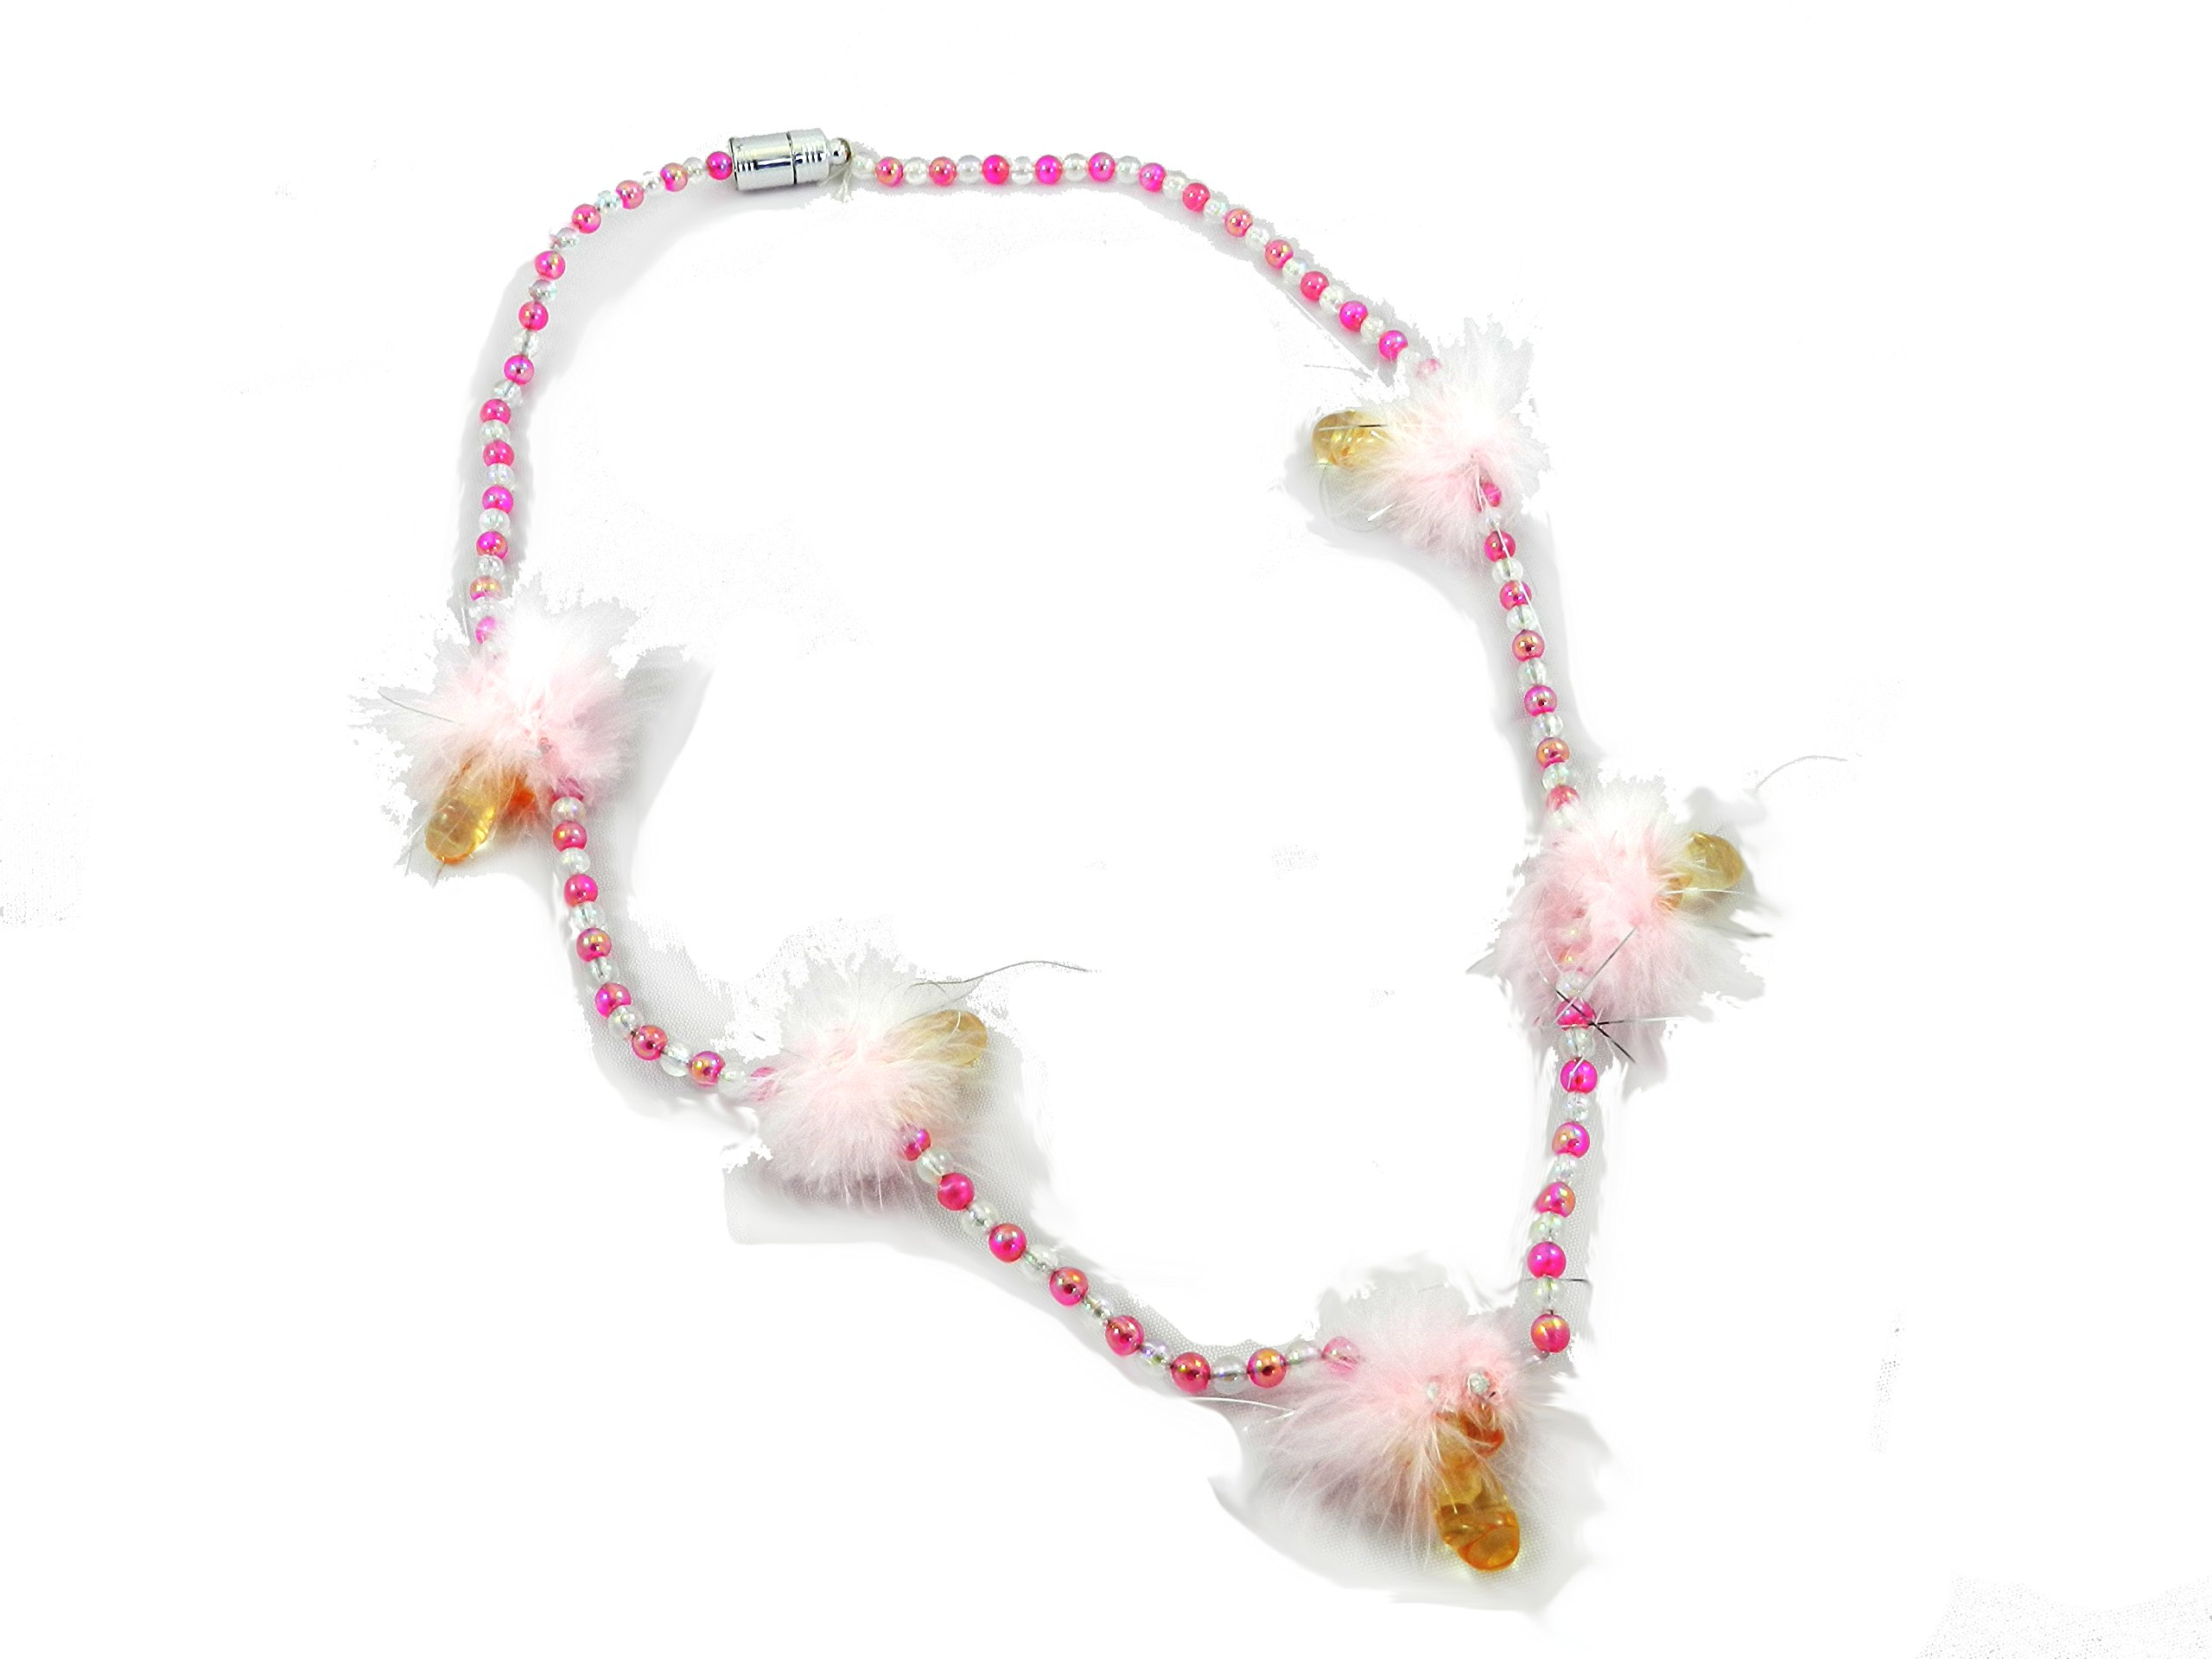 Bachelorette Party Light Up Pecker Necklace by Forum Novelties